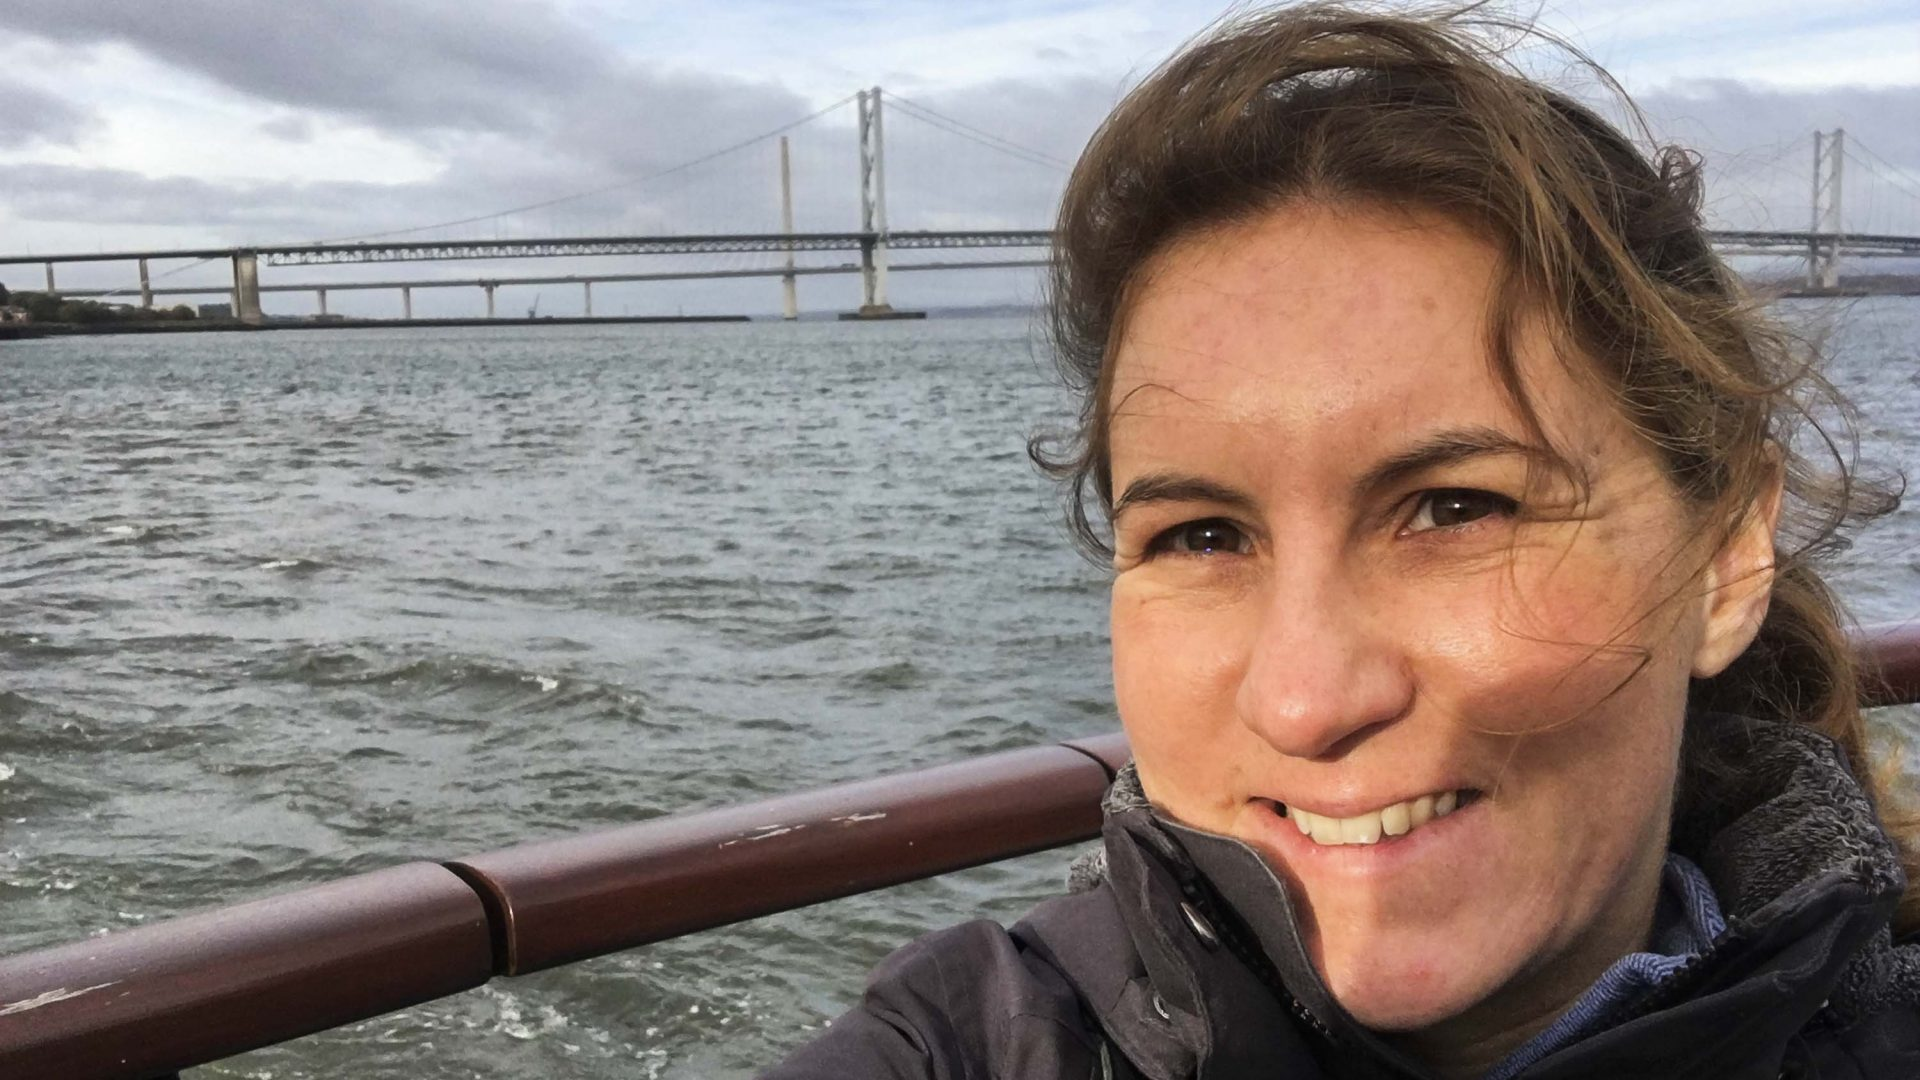 Helen Ochyra on a boat trip in the Forth against the backdrop of the Forth Road Bridge and the Queensferry Crossing.